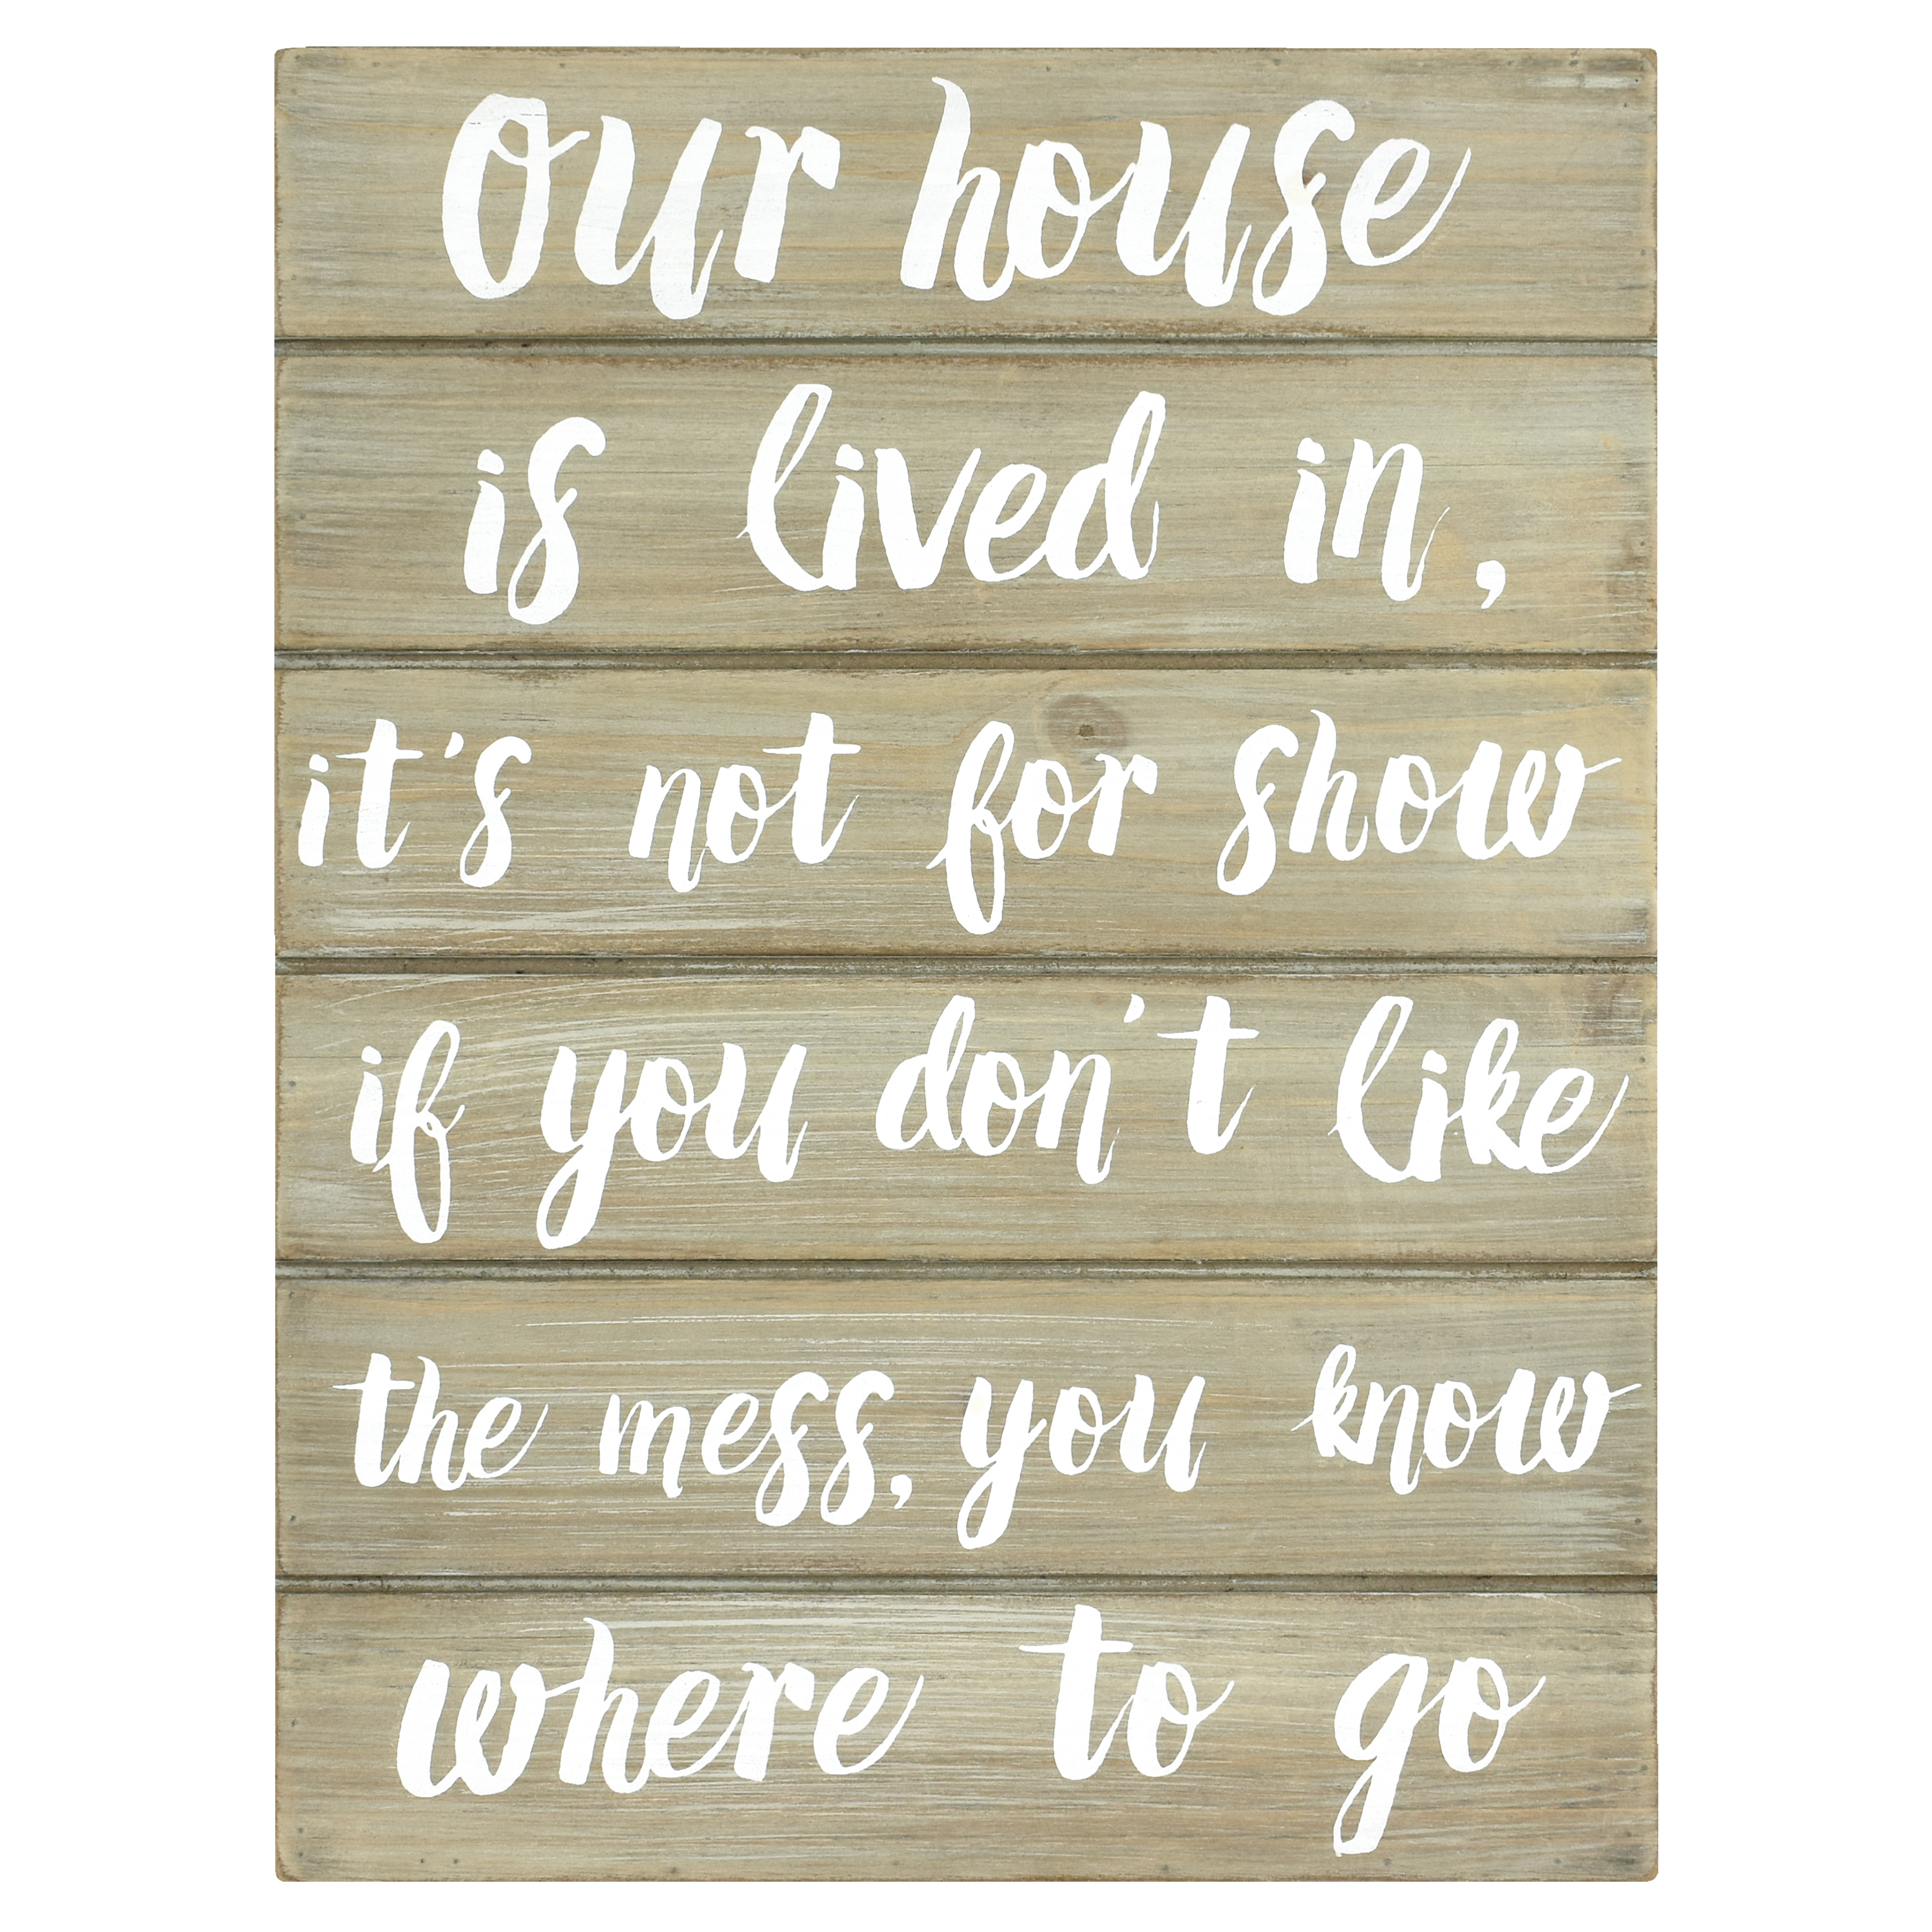 """Better Homes & Gardens 10"""" x 1.5"""" x 13.5"""" Wooden Our House Wall Art, Gray Wash Finish"""